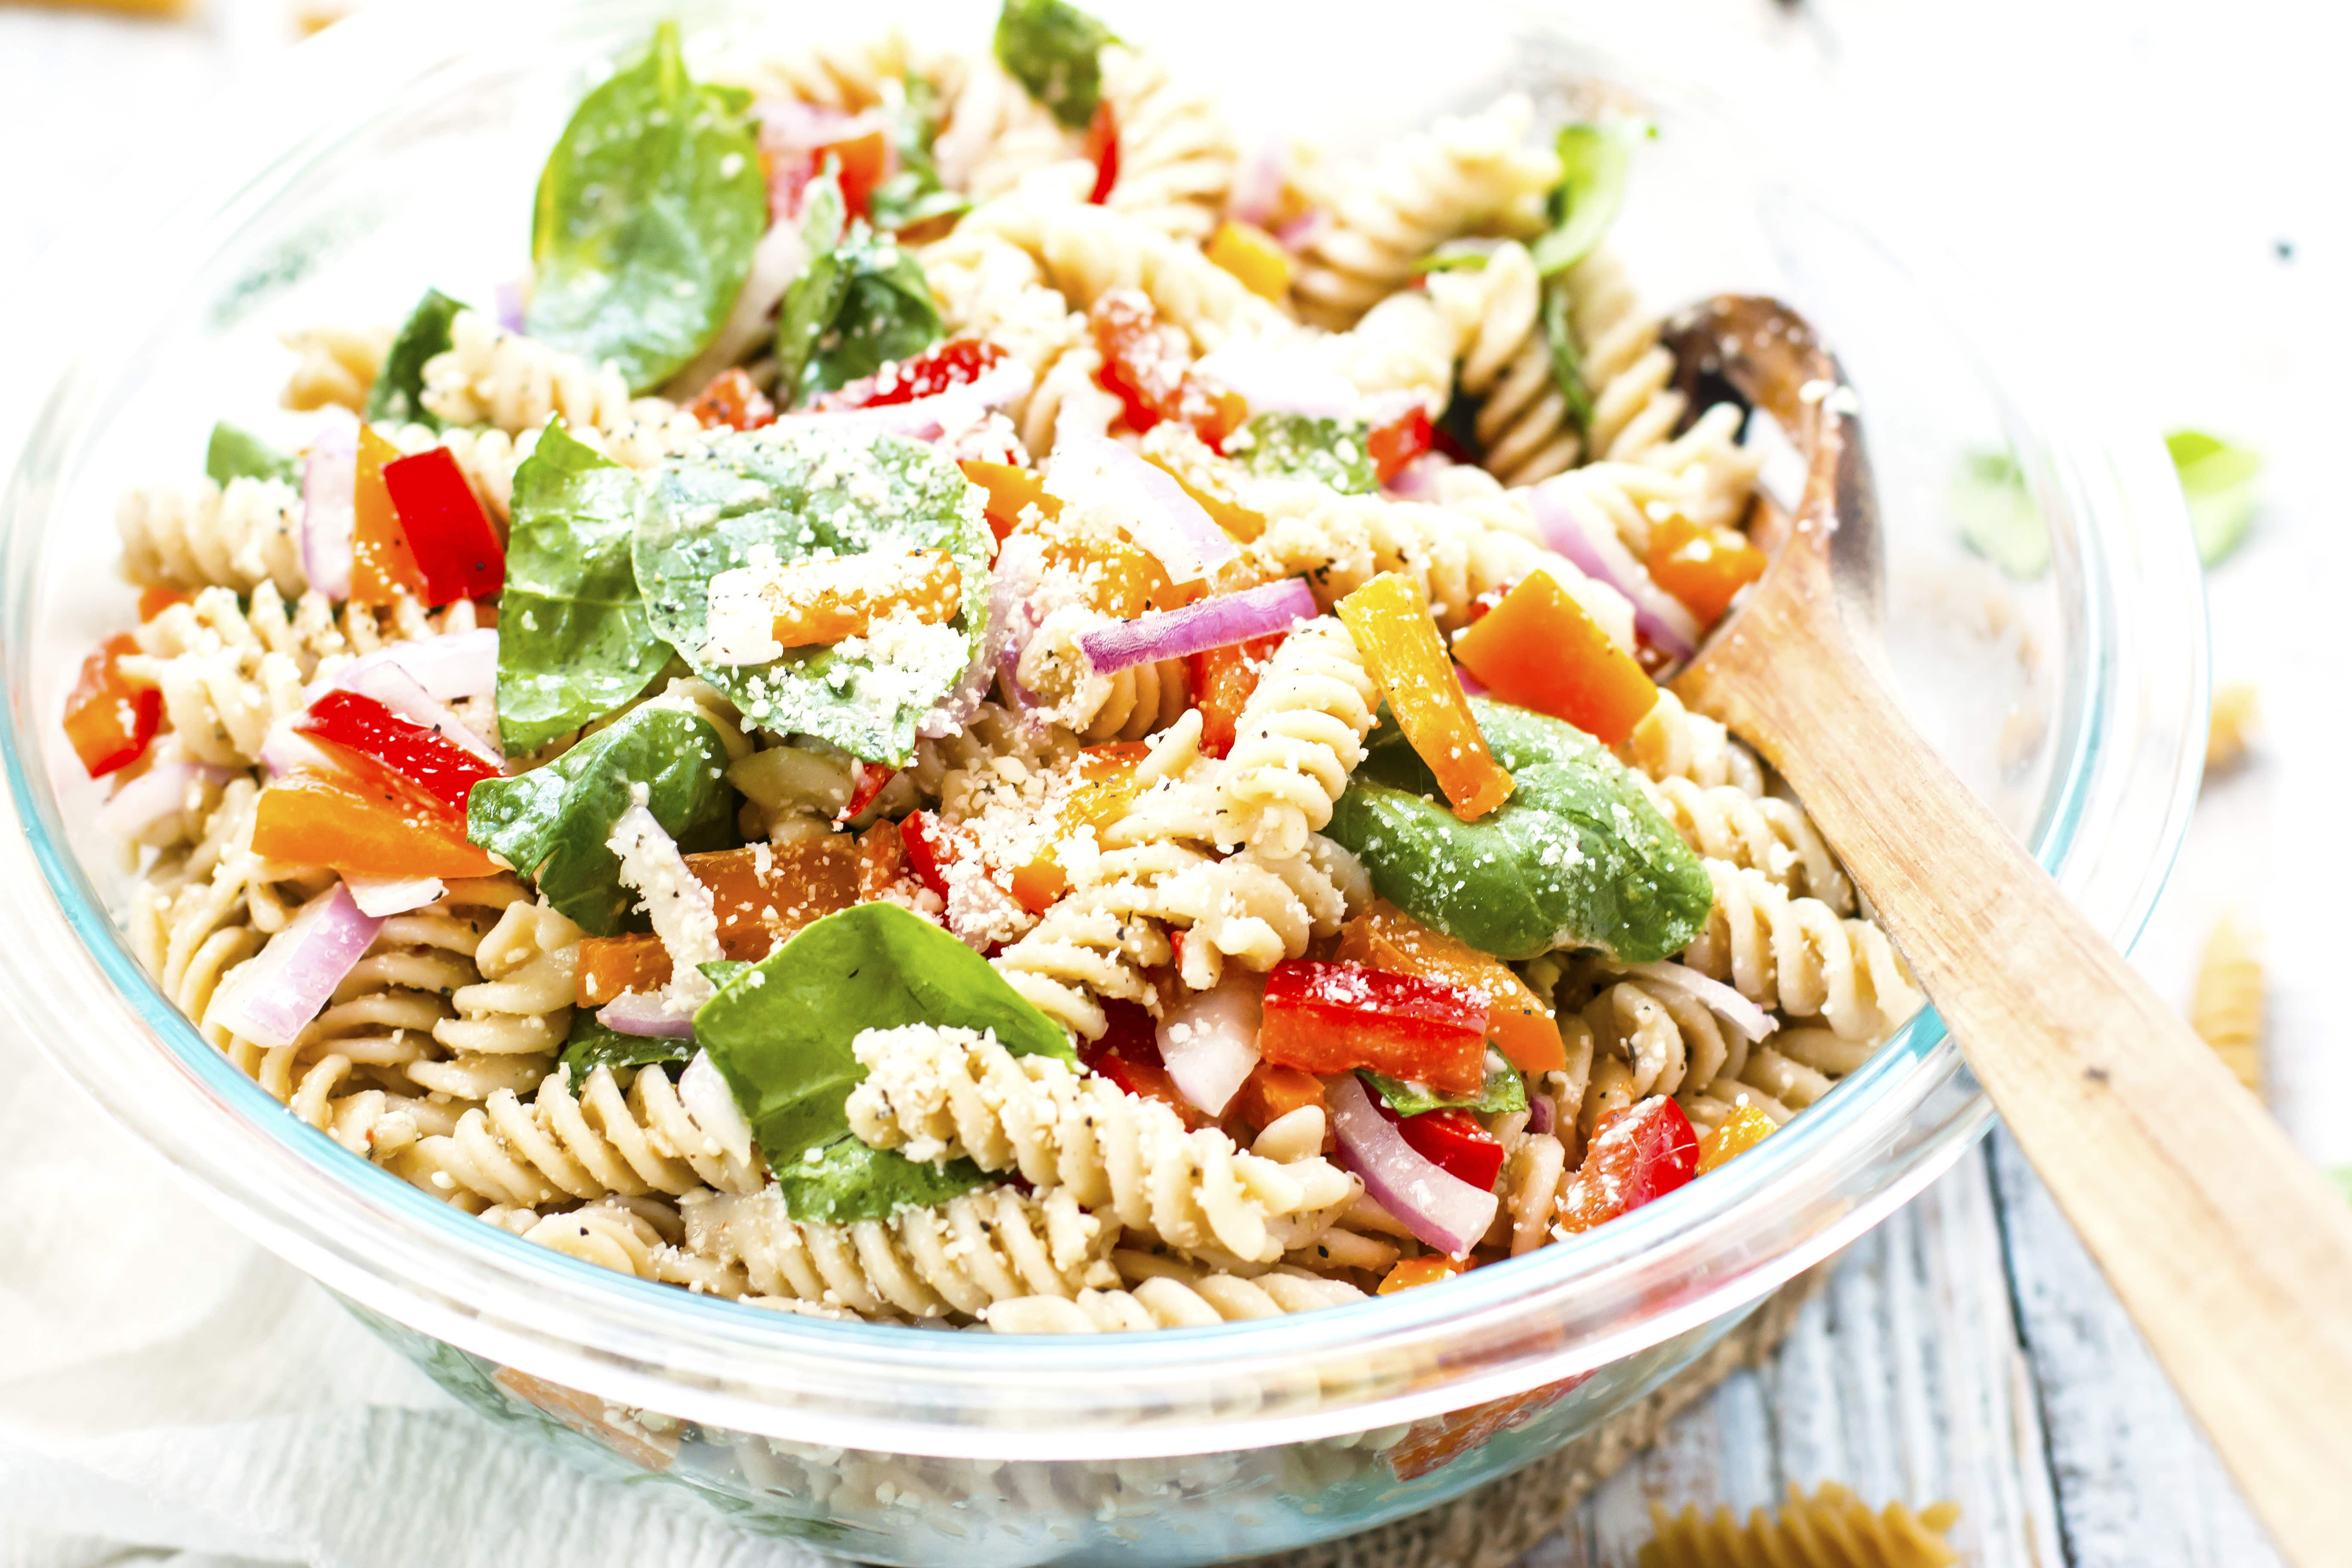 Gluten-free pasta salad with Italian dressing in a glass bowl for a summer party.